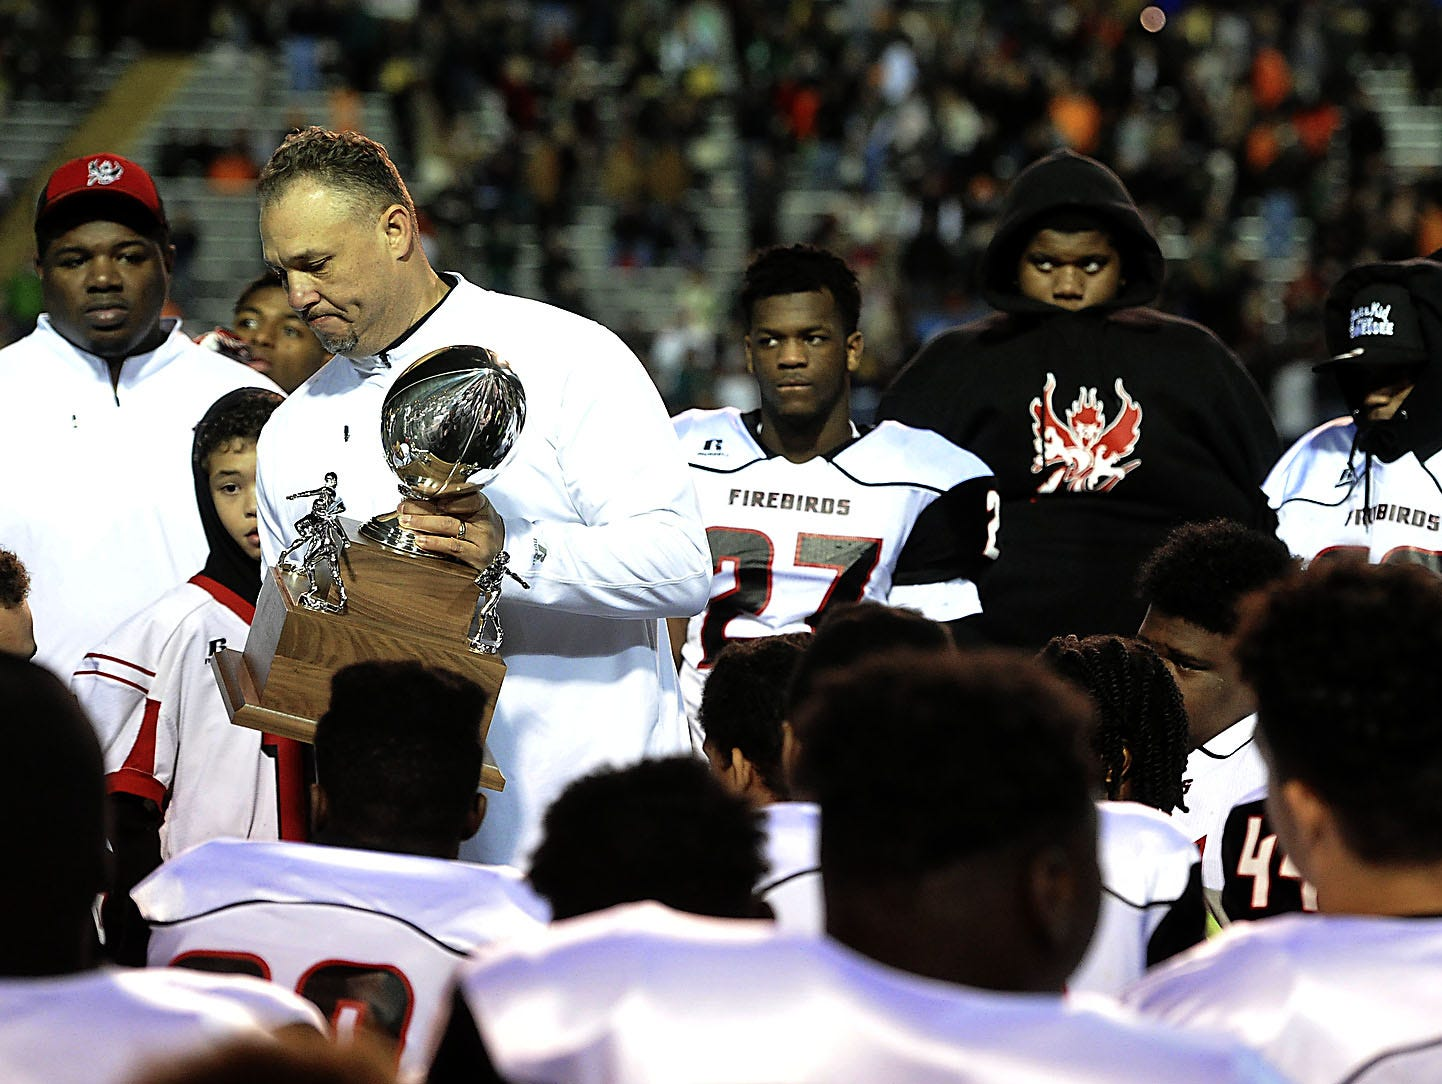 Pearl-Cohn coach Tony Brunetti following last year's loss to Knoxville Catholic